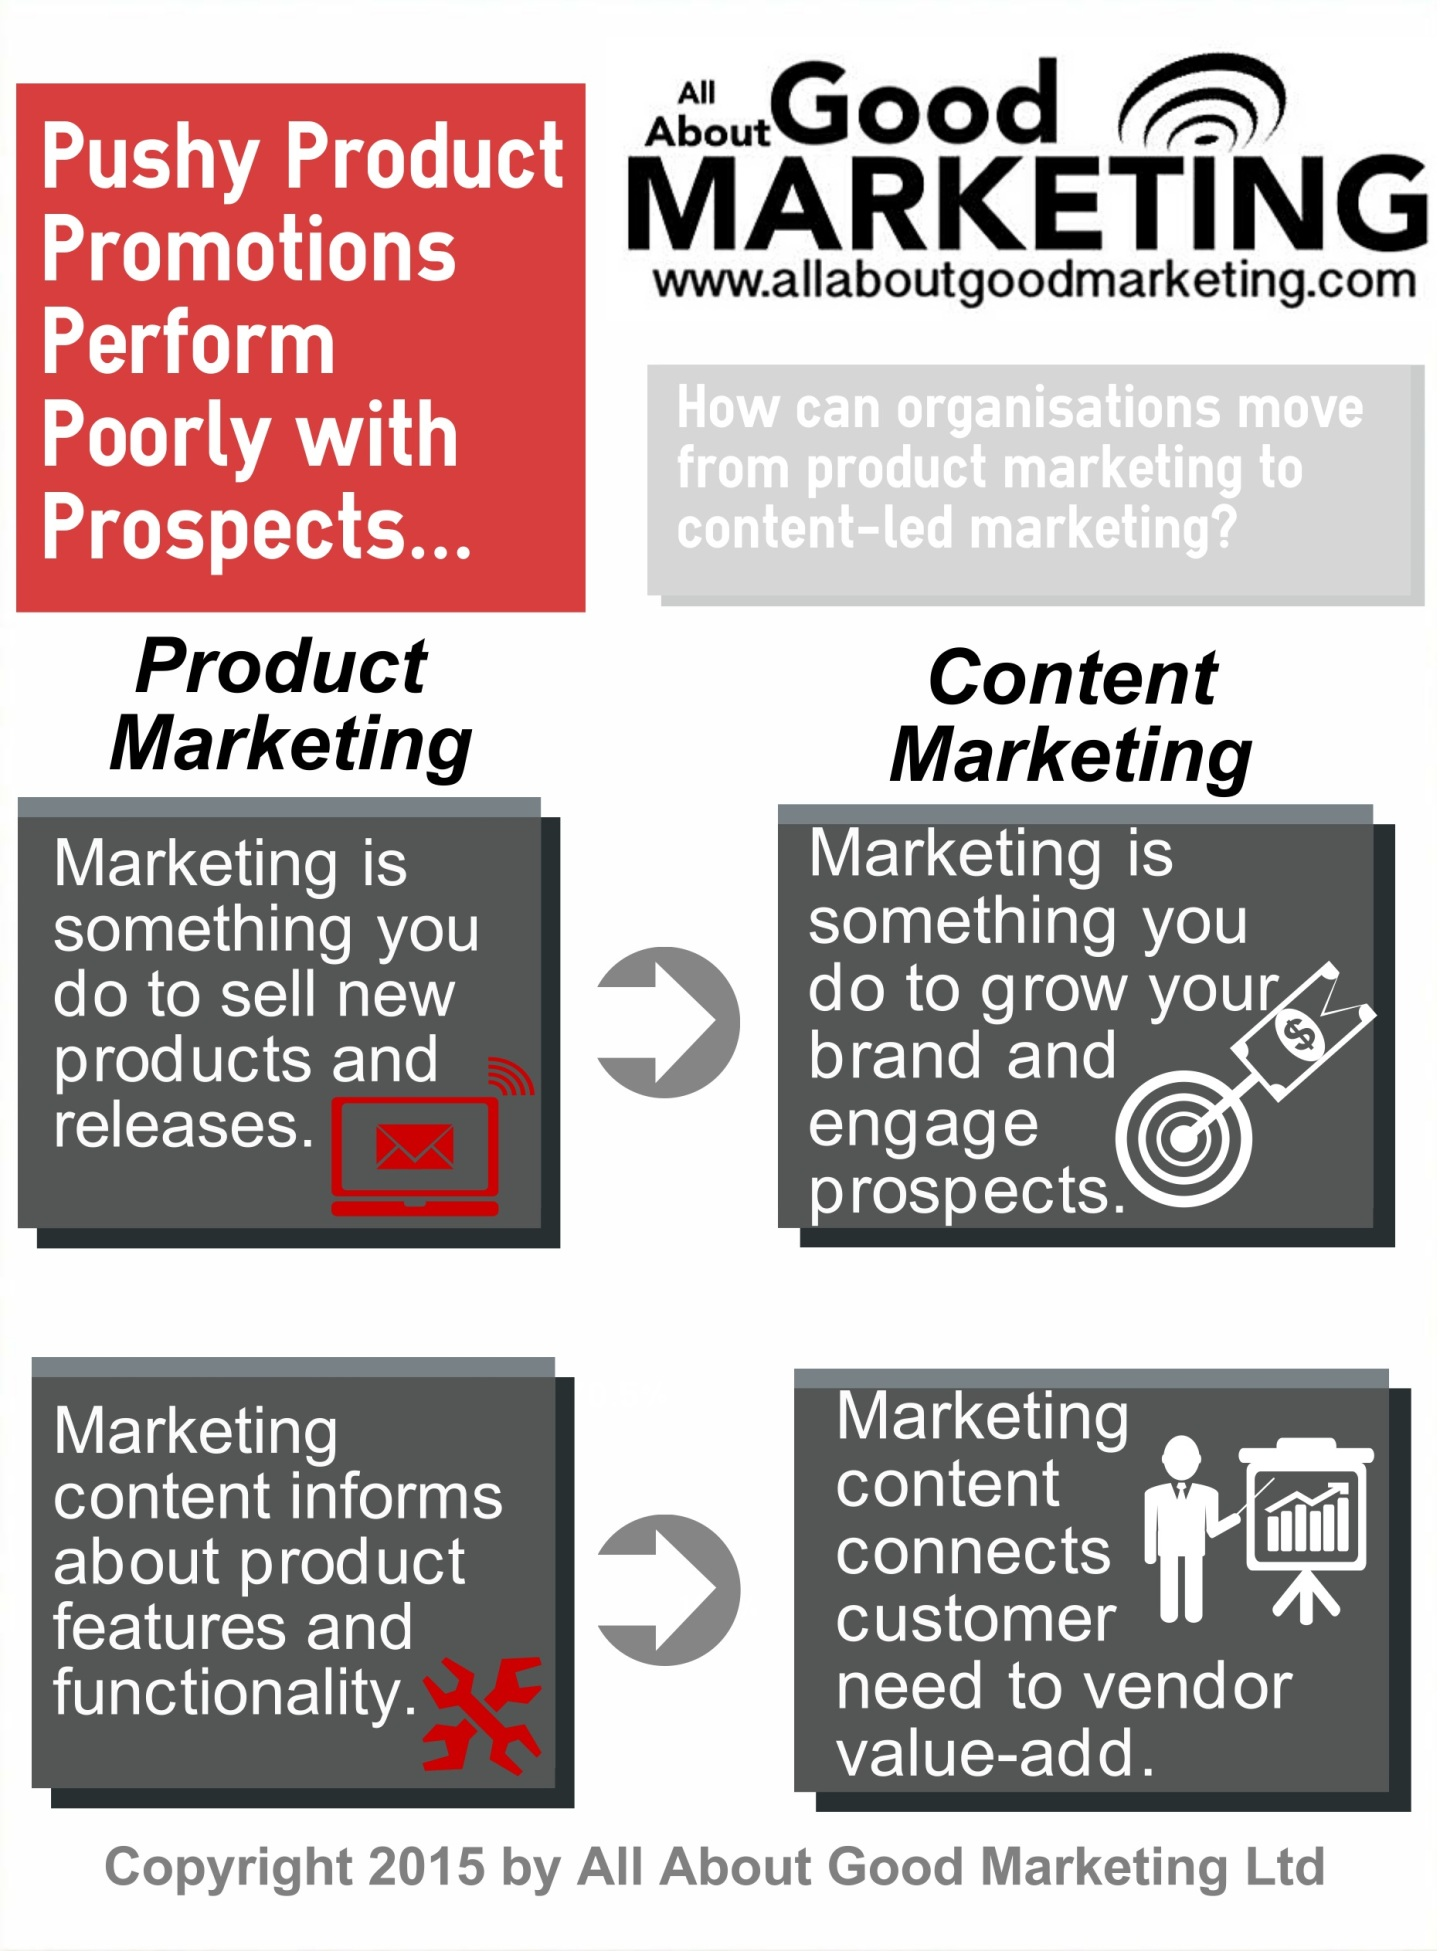 From Product Marketing to Content Marketing